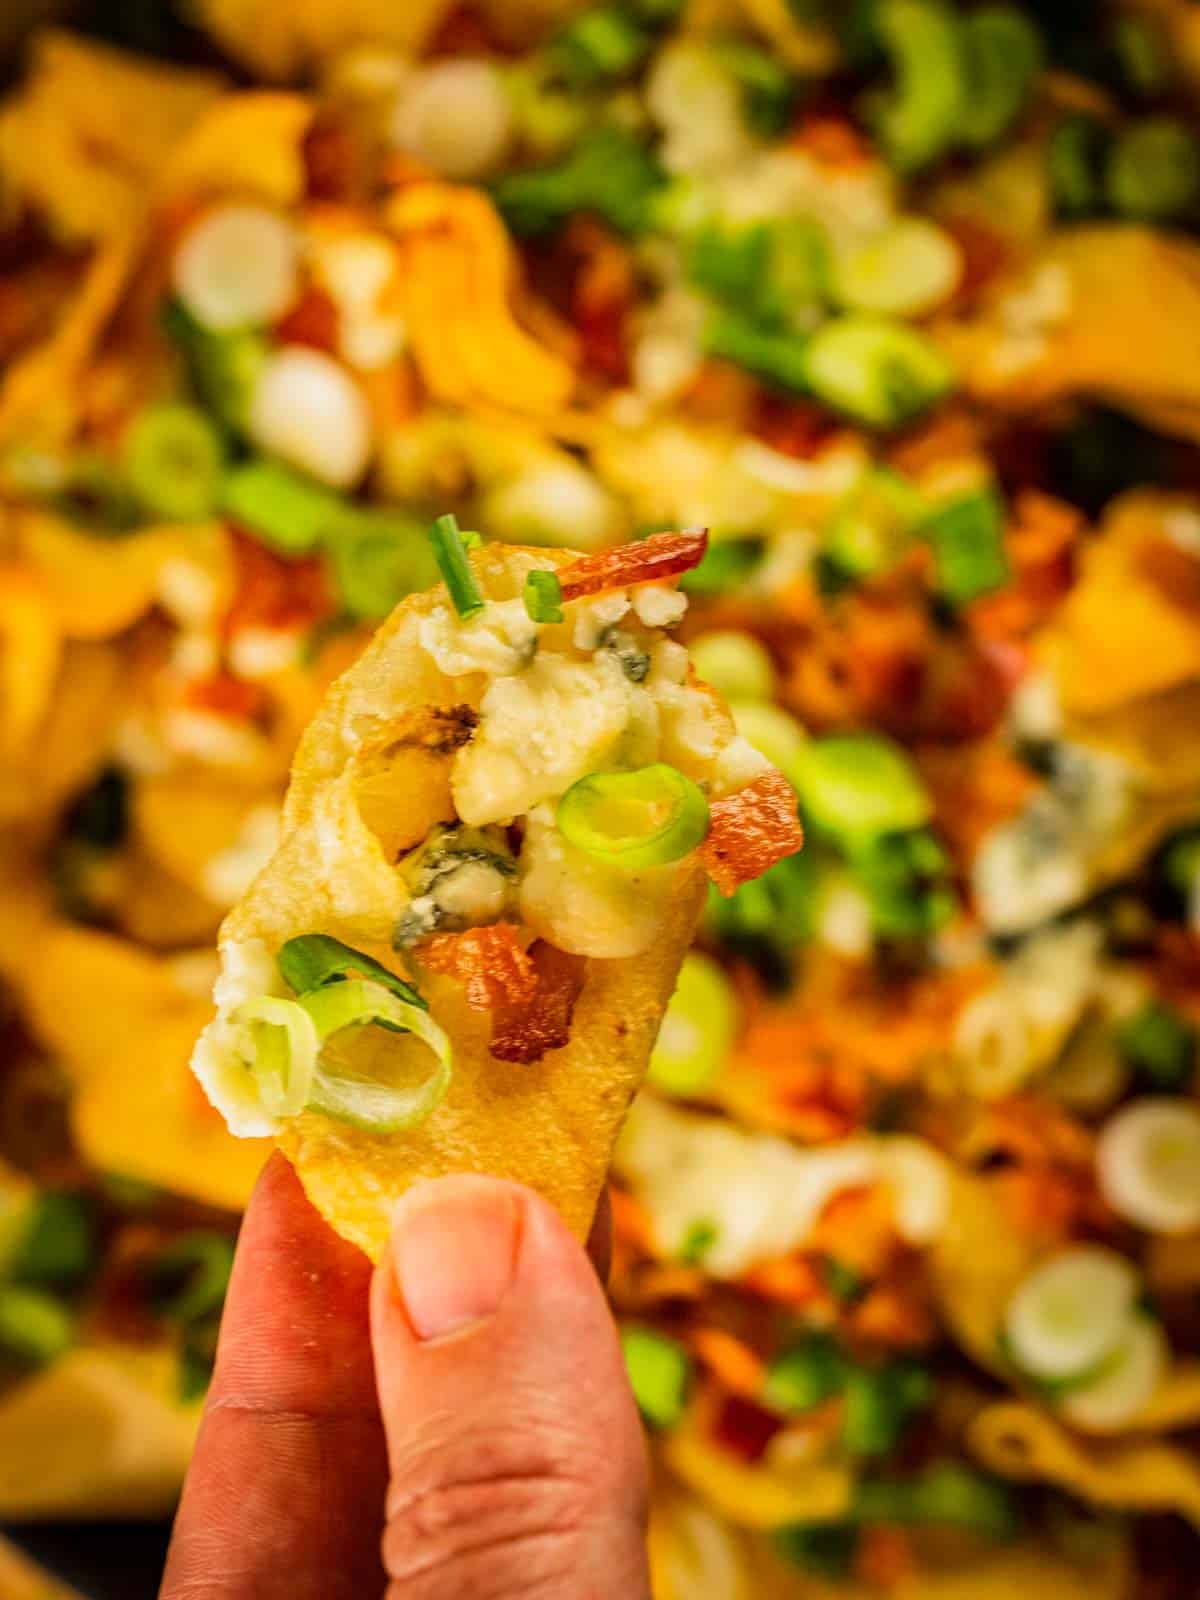 hand holding a kettle chips with blue cheese, bacon and scallions on it